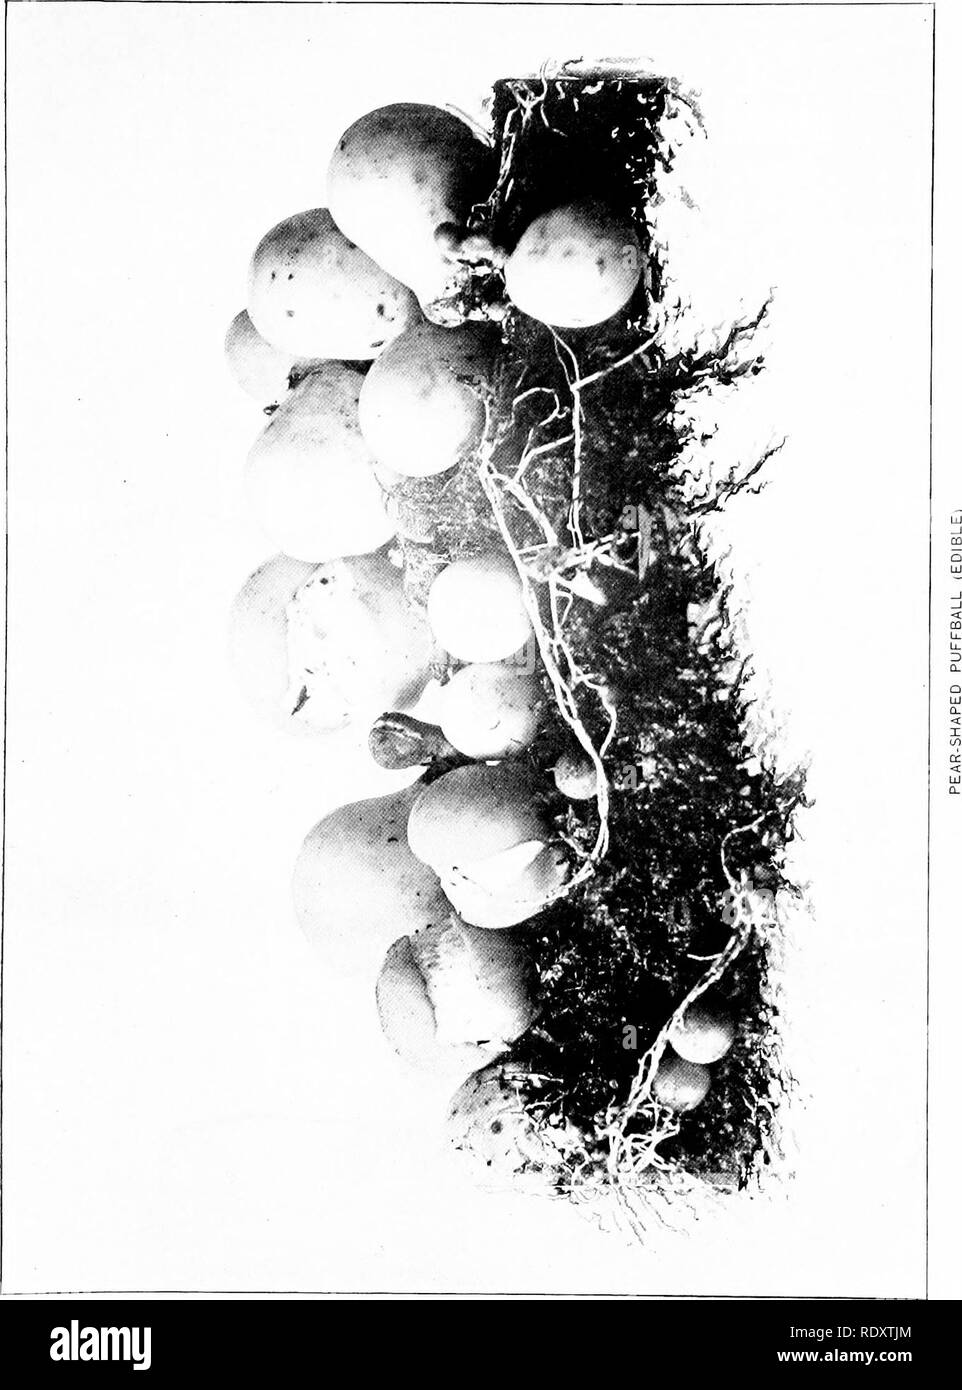 . The mushroom book : a popular guide to the identification and study of our commoner fungi, with special emphasis on the edible varieties . Mushrooms; Mushrooms, Edible; Cookery (Mushrooms); cbk. . Please note that these images are extracted from scanned page images that may have been digitally enhanced for readability - coloration and appearance of these illustrations may not perfectly resemble the original work.. Marshall, Nina L. (Nina Lovering). New York : Doubleday, Page - Stock Image